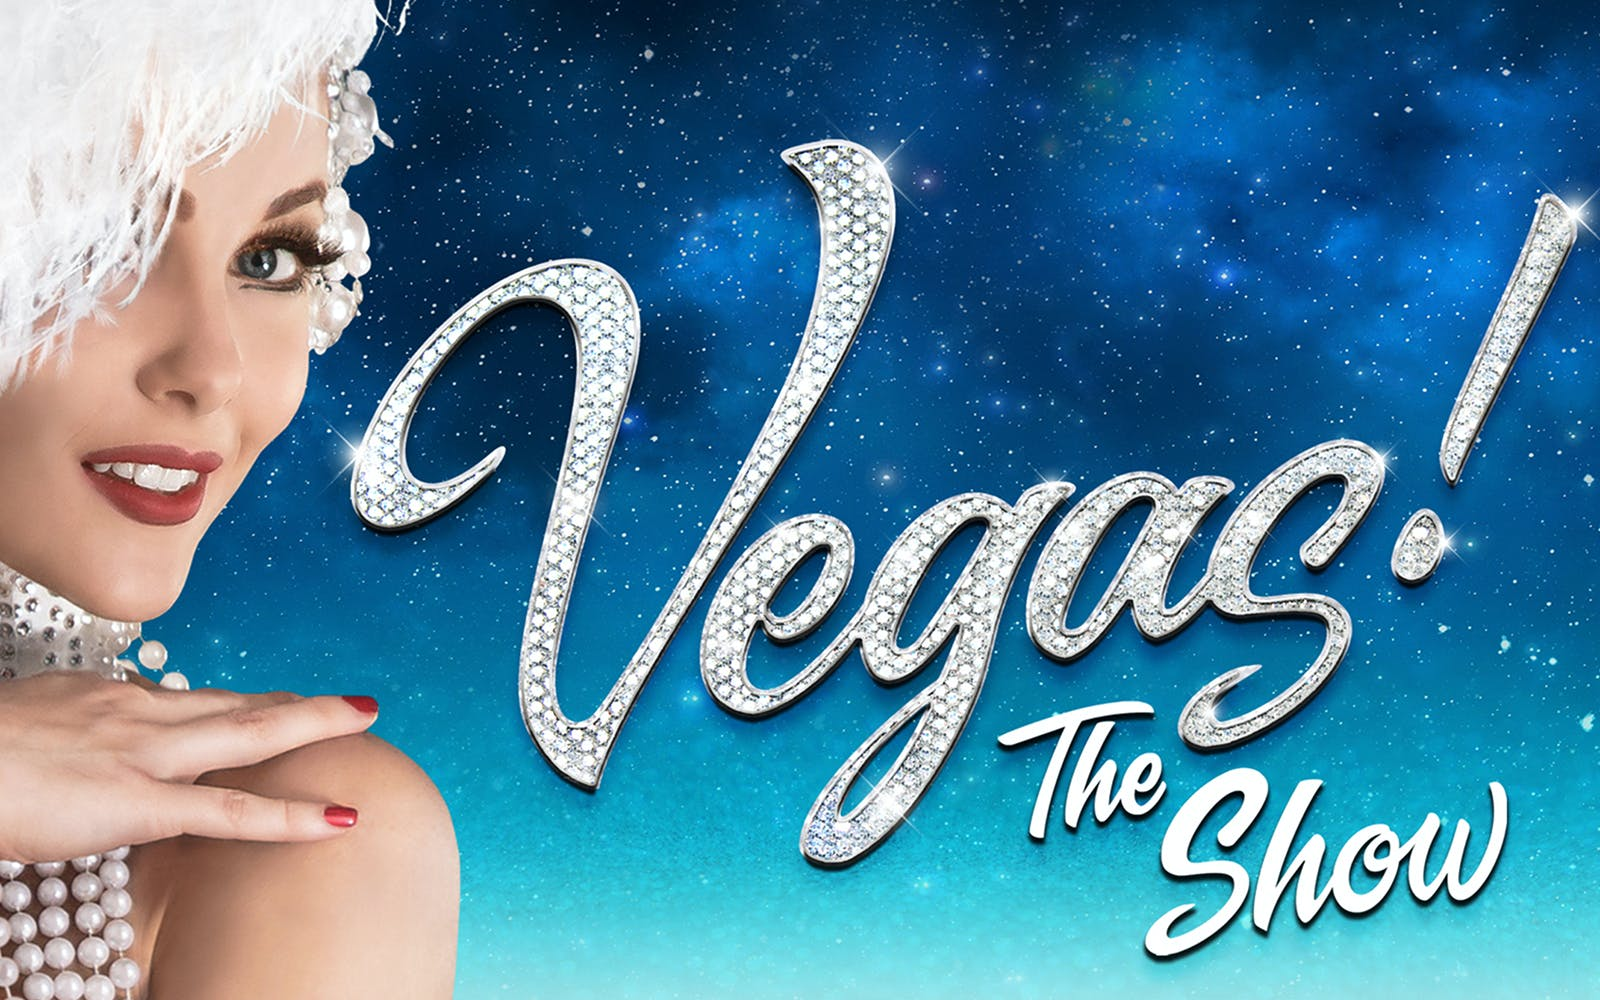 vegas! - the show-1